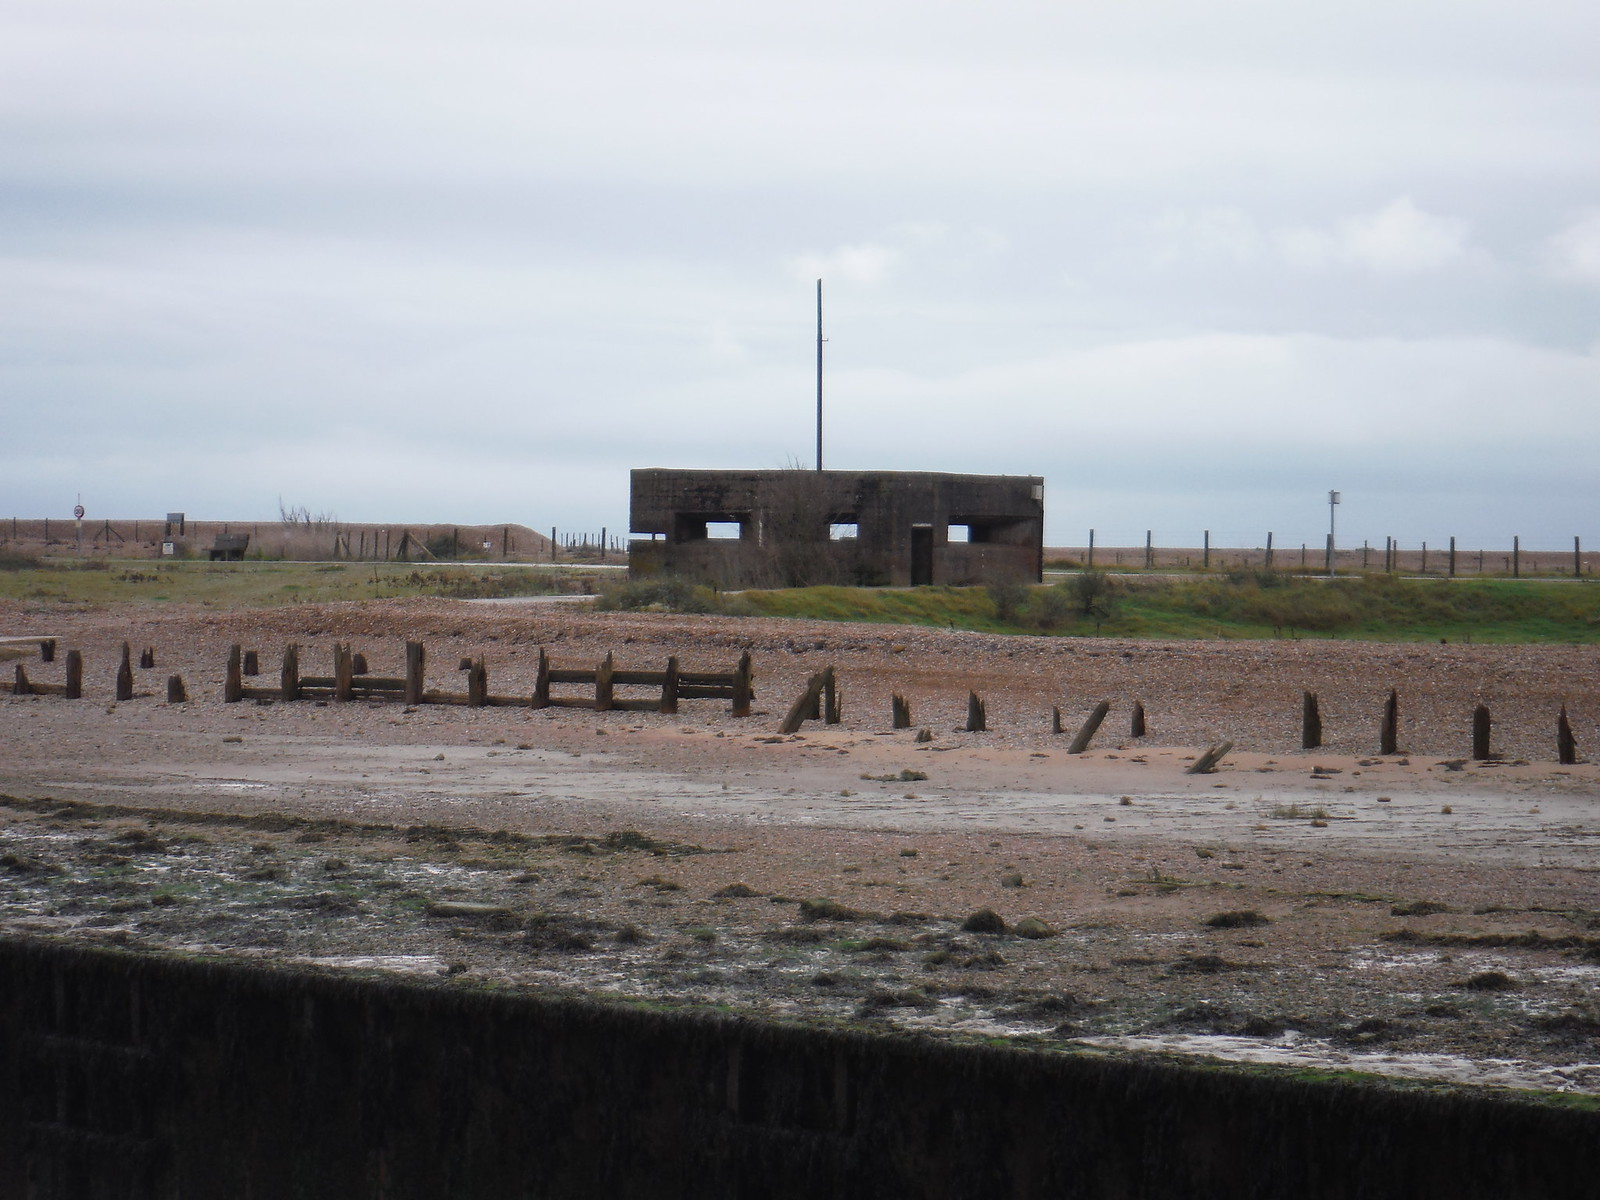 Gun Emplacement across the Rother SWC 154 - Rye to Dungeness and Lydd-on-Sea or Lydd or Circular